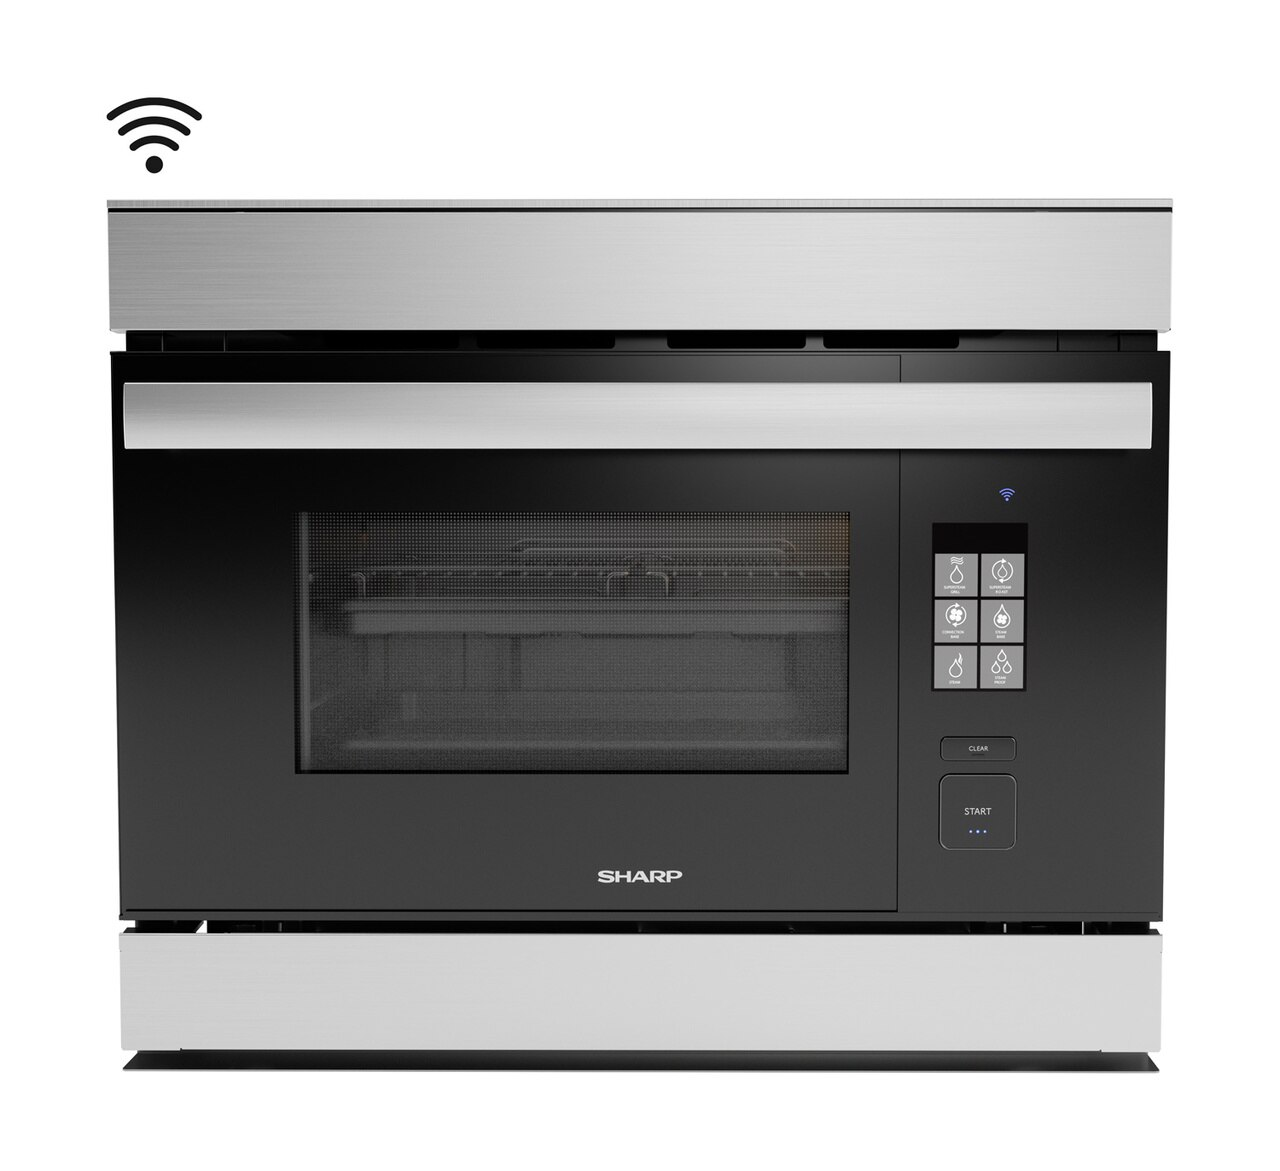 The SuperSteam SSC2489DS IoT Steam Oven: Sharp's Superheated Steam and Convection Built-in Wall Oven